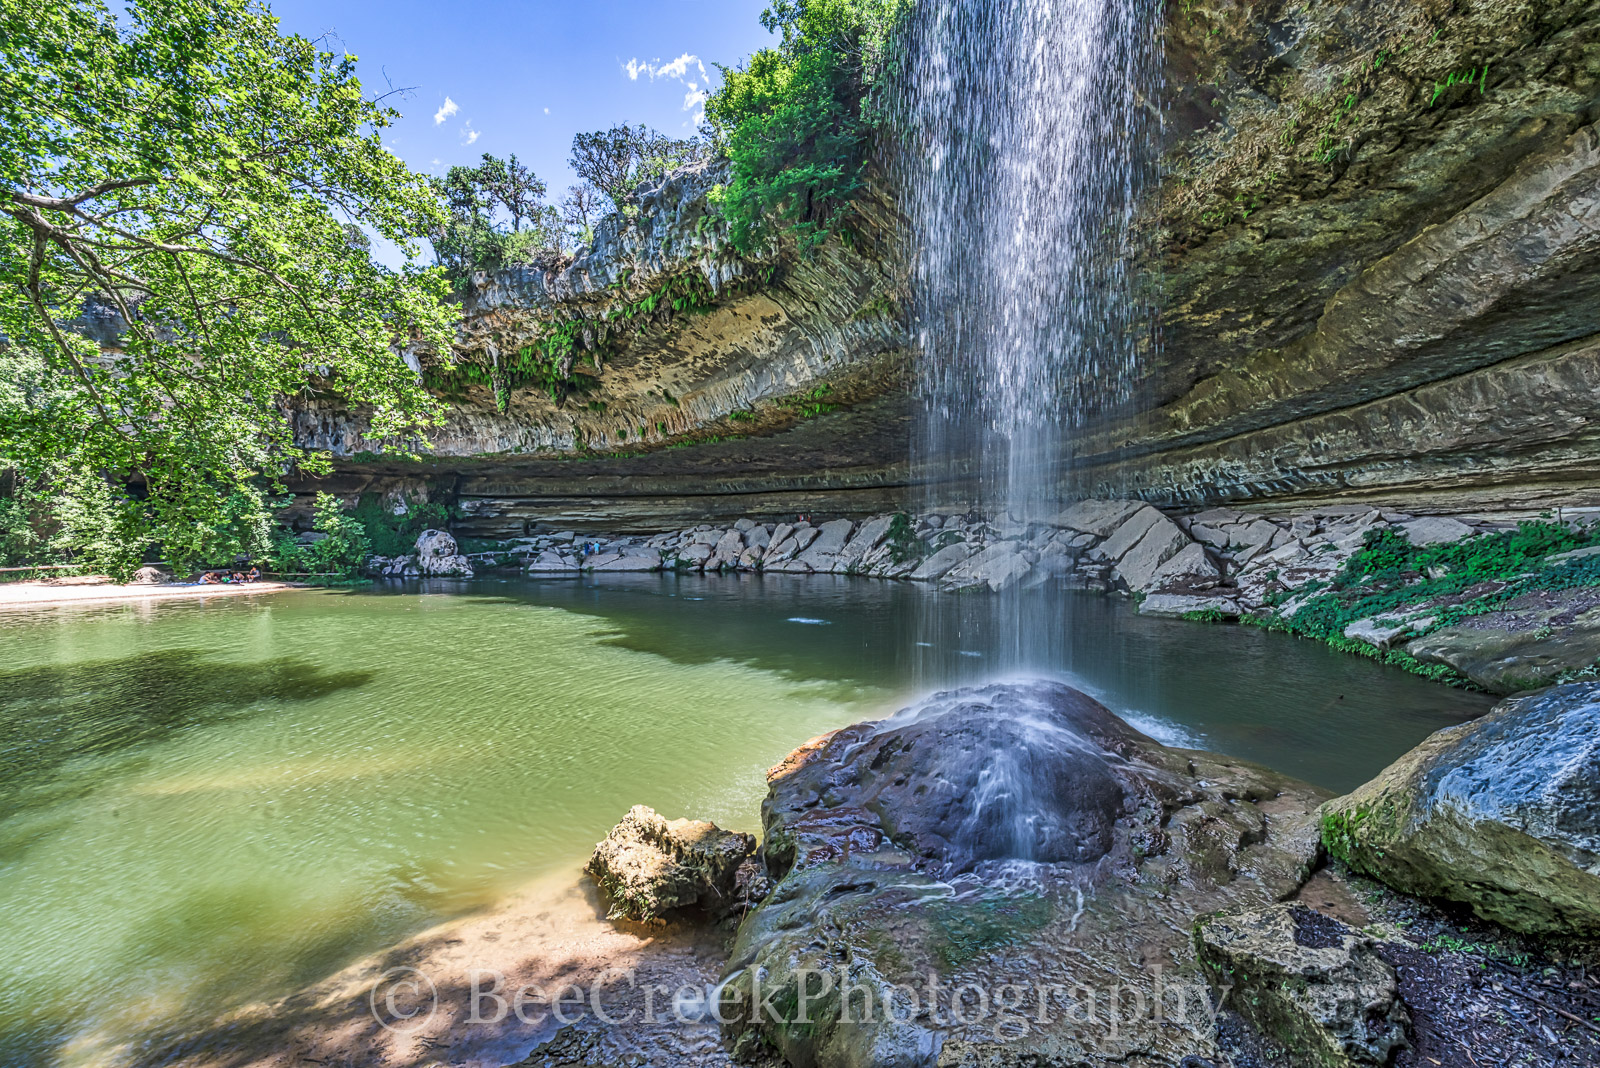 Hamilton Pool, natural pool, rockscape, pool, natural, waterfall, travis county, cave, natural area, austin tx, clear waters of hamilton pool, cliff diving, near austin, watering hole, Balcones Canyon, photo